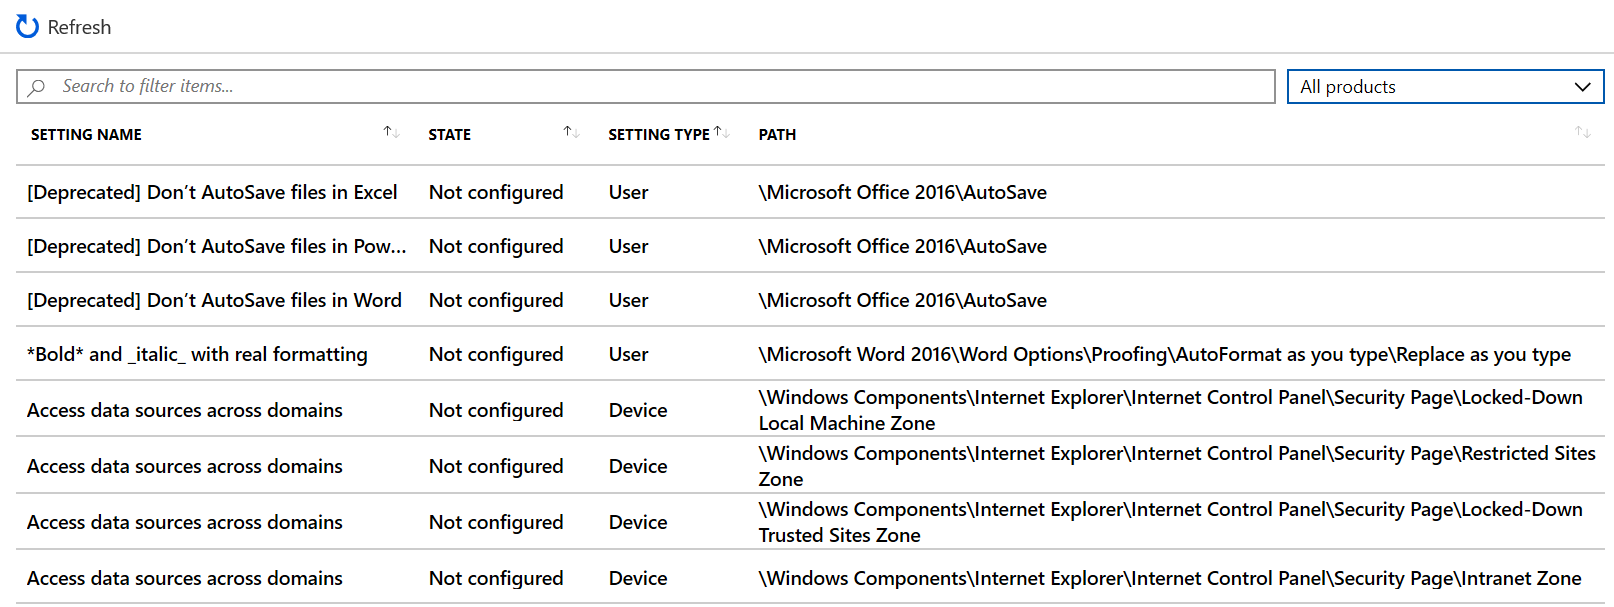 Use templates for Windows 10 devices in Microsoft Intune - Azure